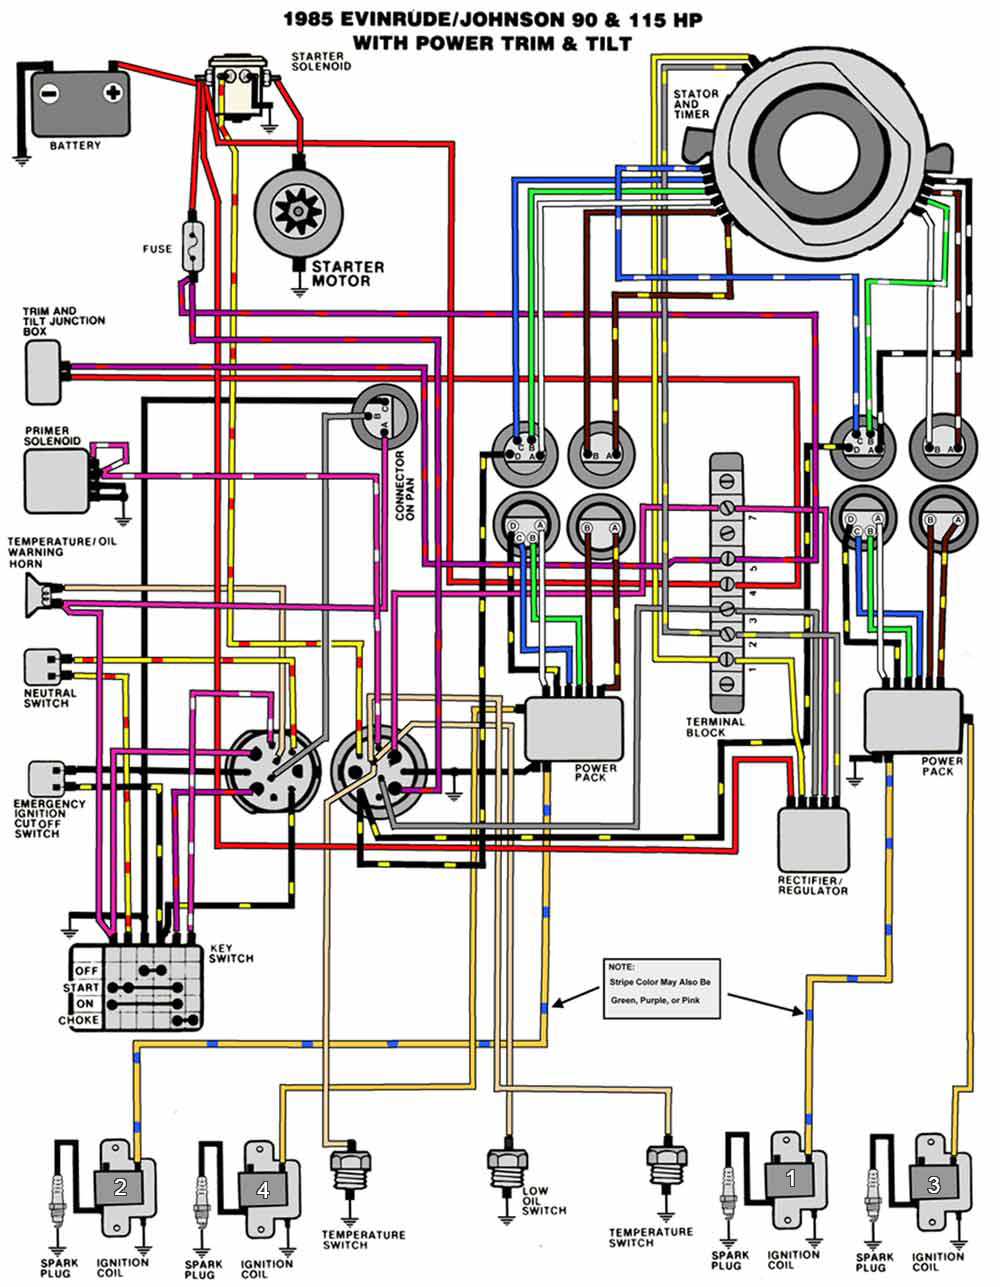 1985_90_115TnT mastertech marine evinrude johnson outboard wiring diagrams wiring diagram for 115 mercury outboard motor at suagrazia.org